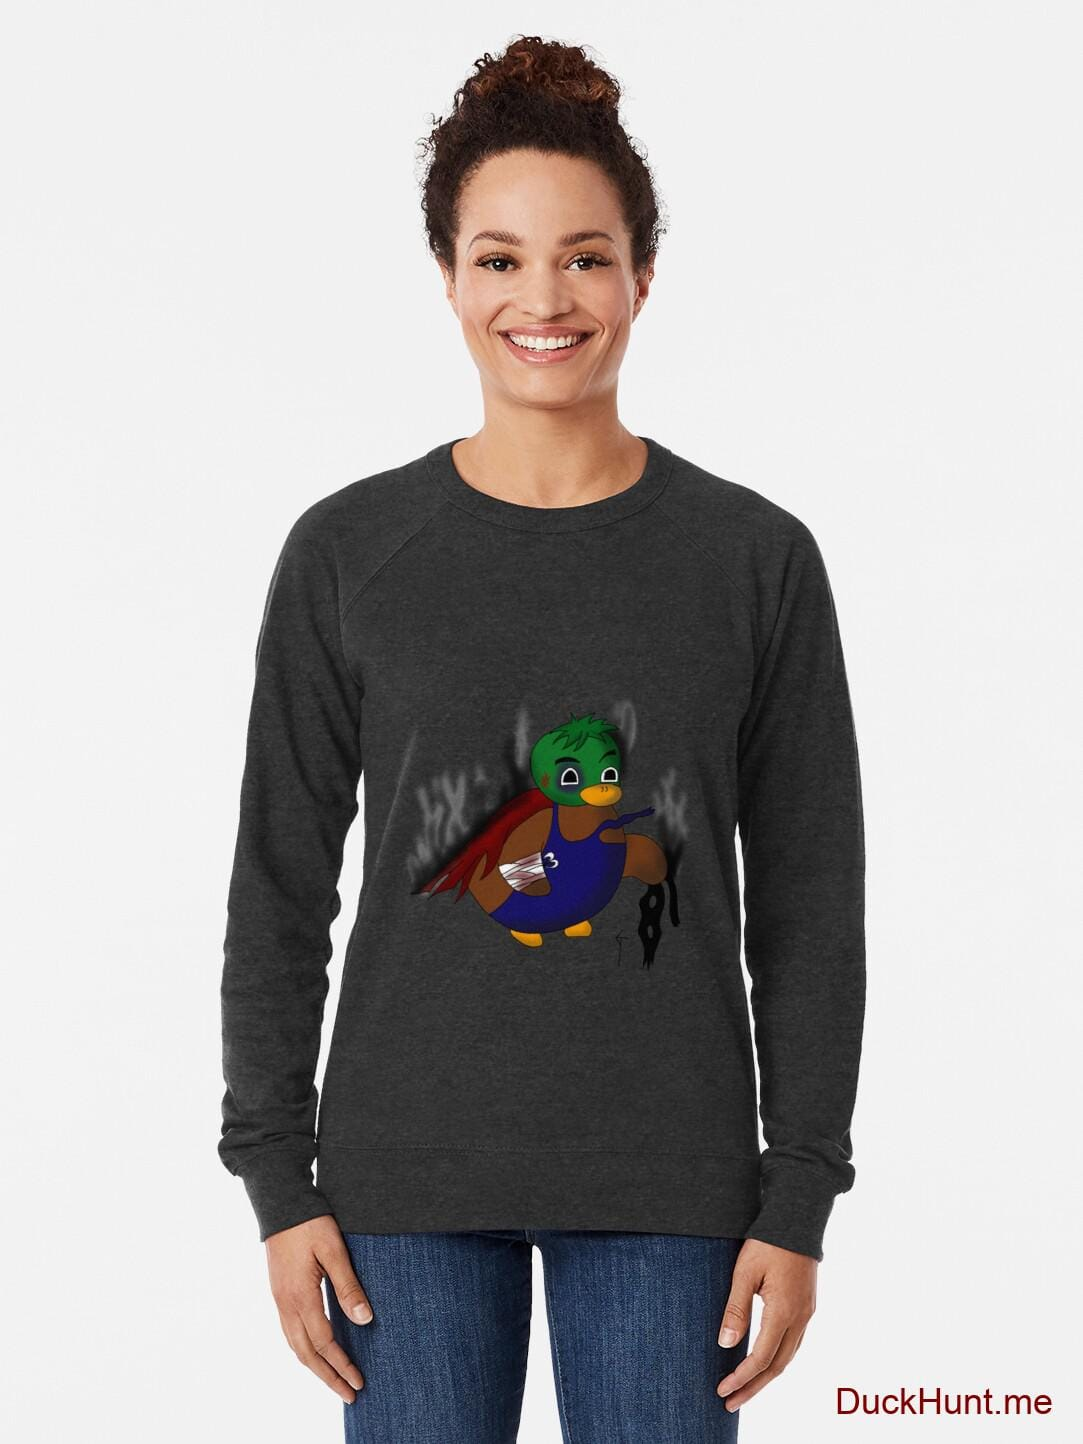 Dead Boss Duck (smoky) Charcoal Lightweight Sweatshirt alternative image 1